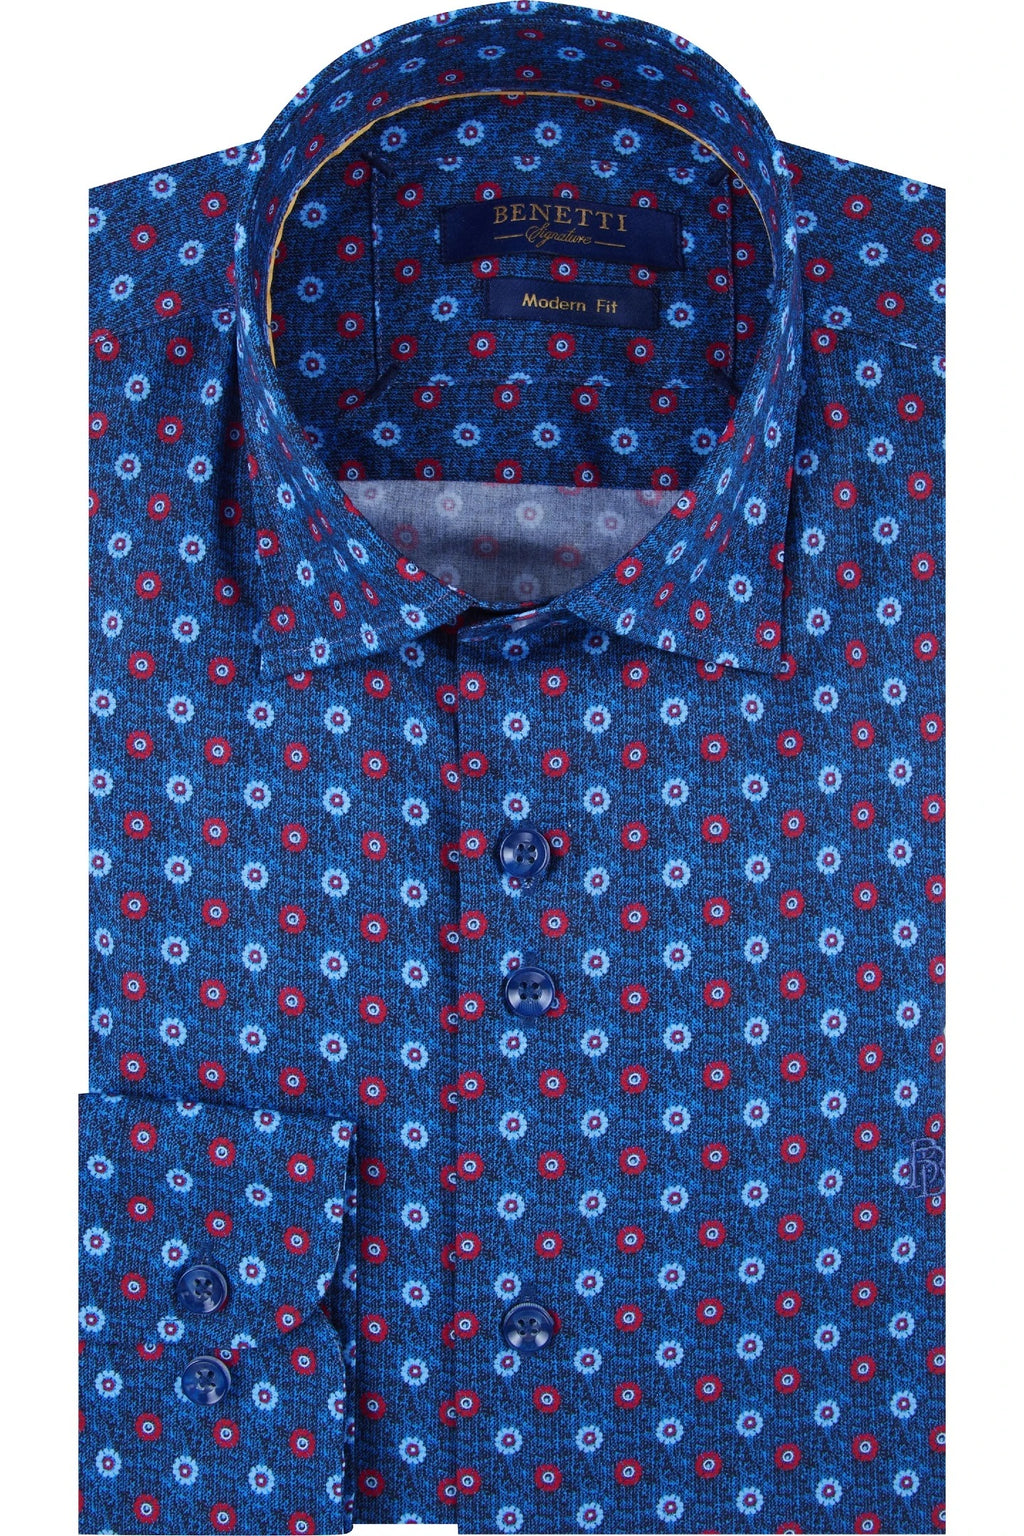 Benetti Modern Fit Noah Pattern Shirt - Red - jjdonnelly